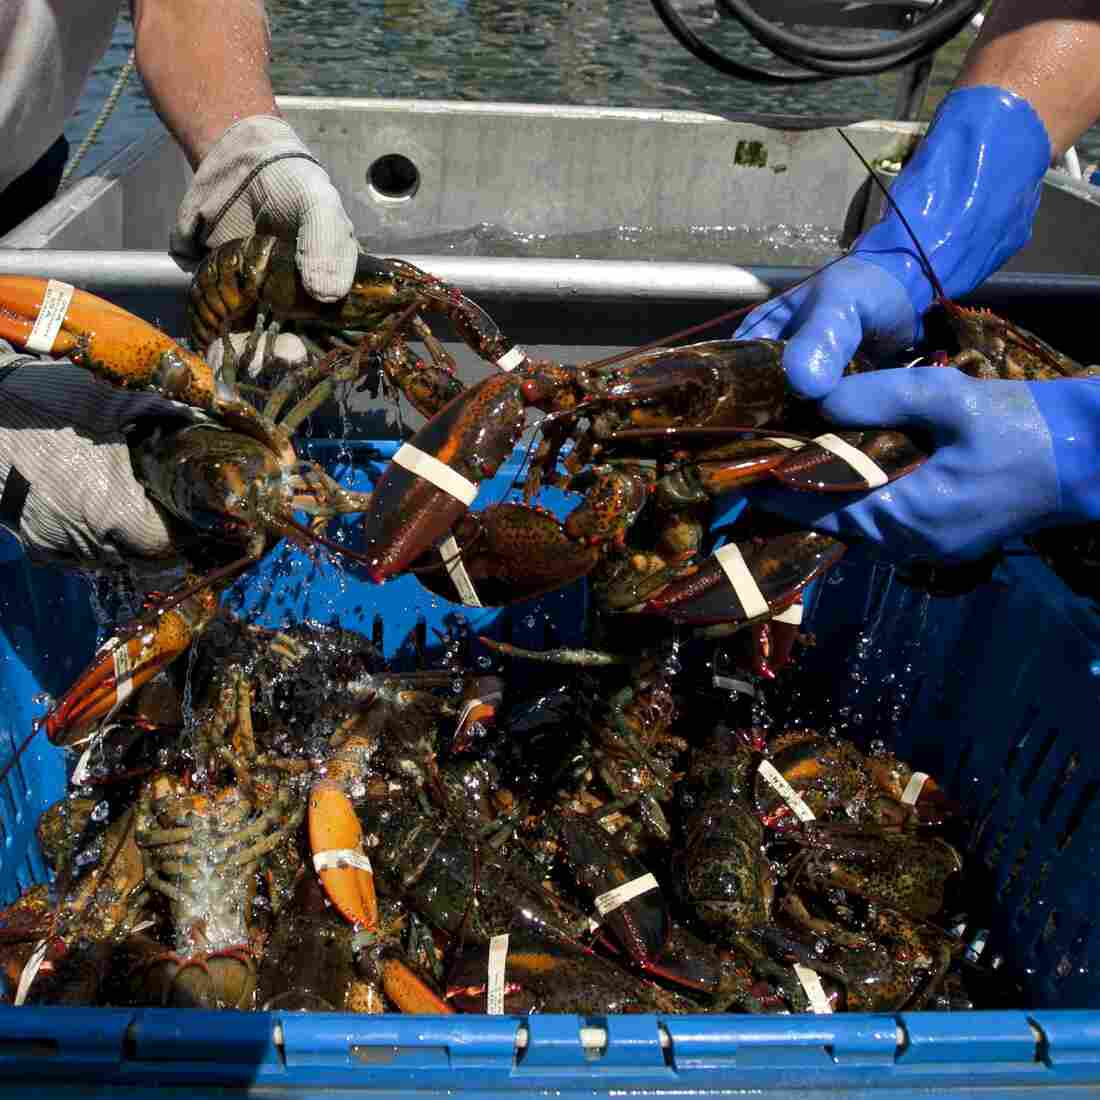 Summer Lobster Surplus Leads To Cross-Border Price War Between Trappers